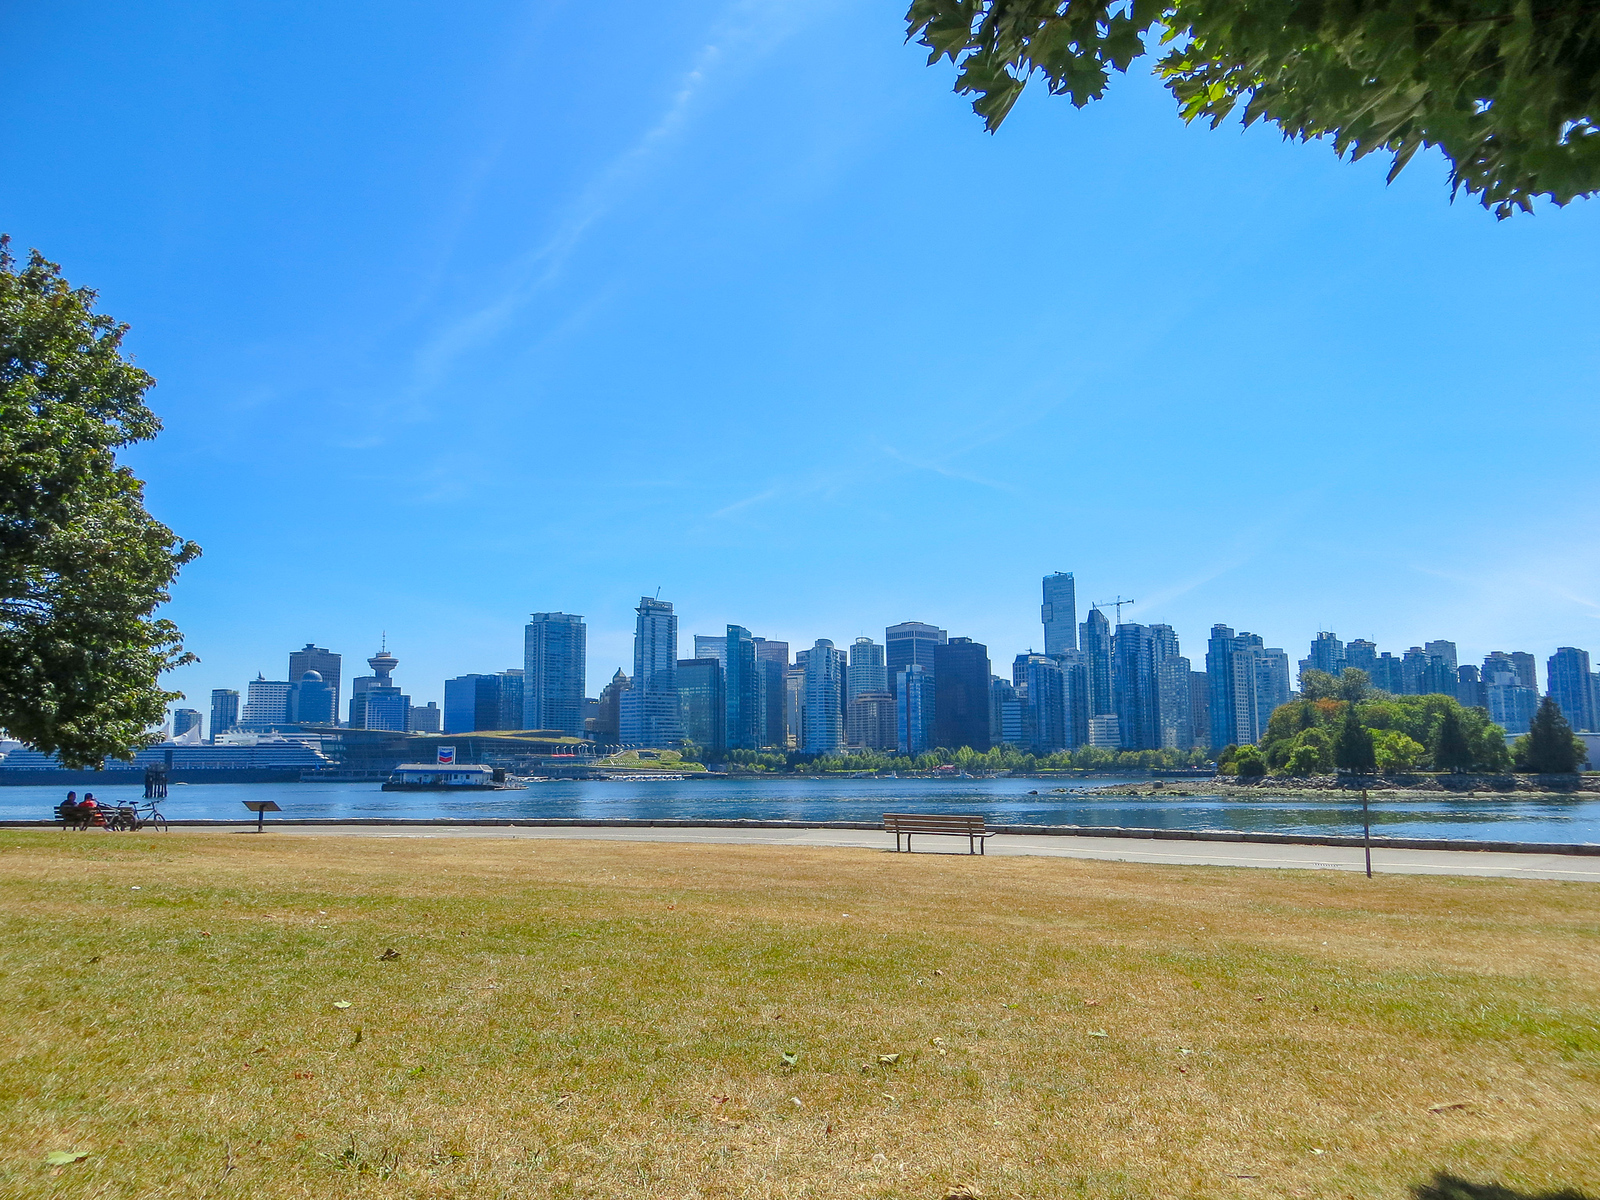 48 hours in Vancouver will be a great summer vacation